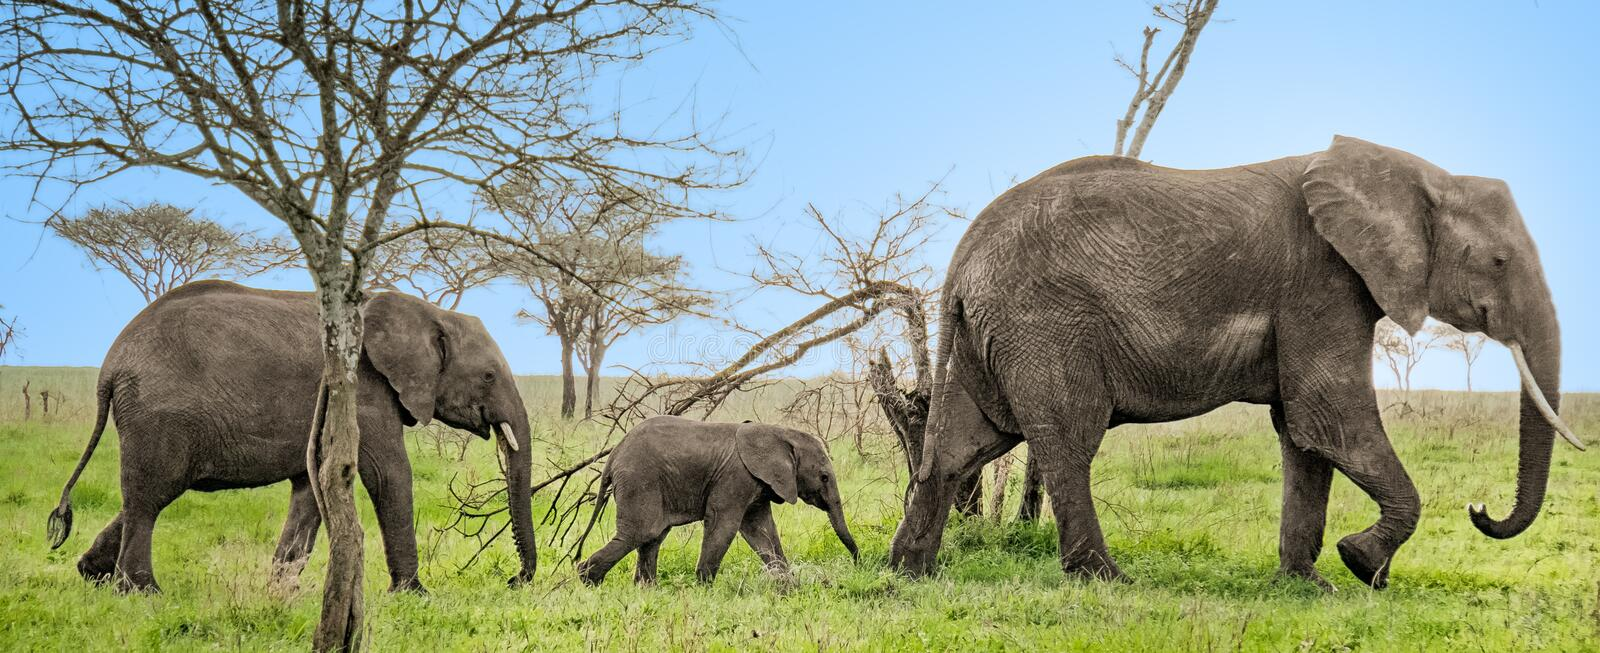 3 Elephants all in a row royalty free stock photo